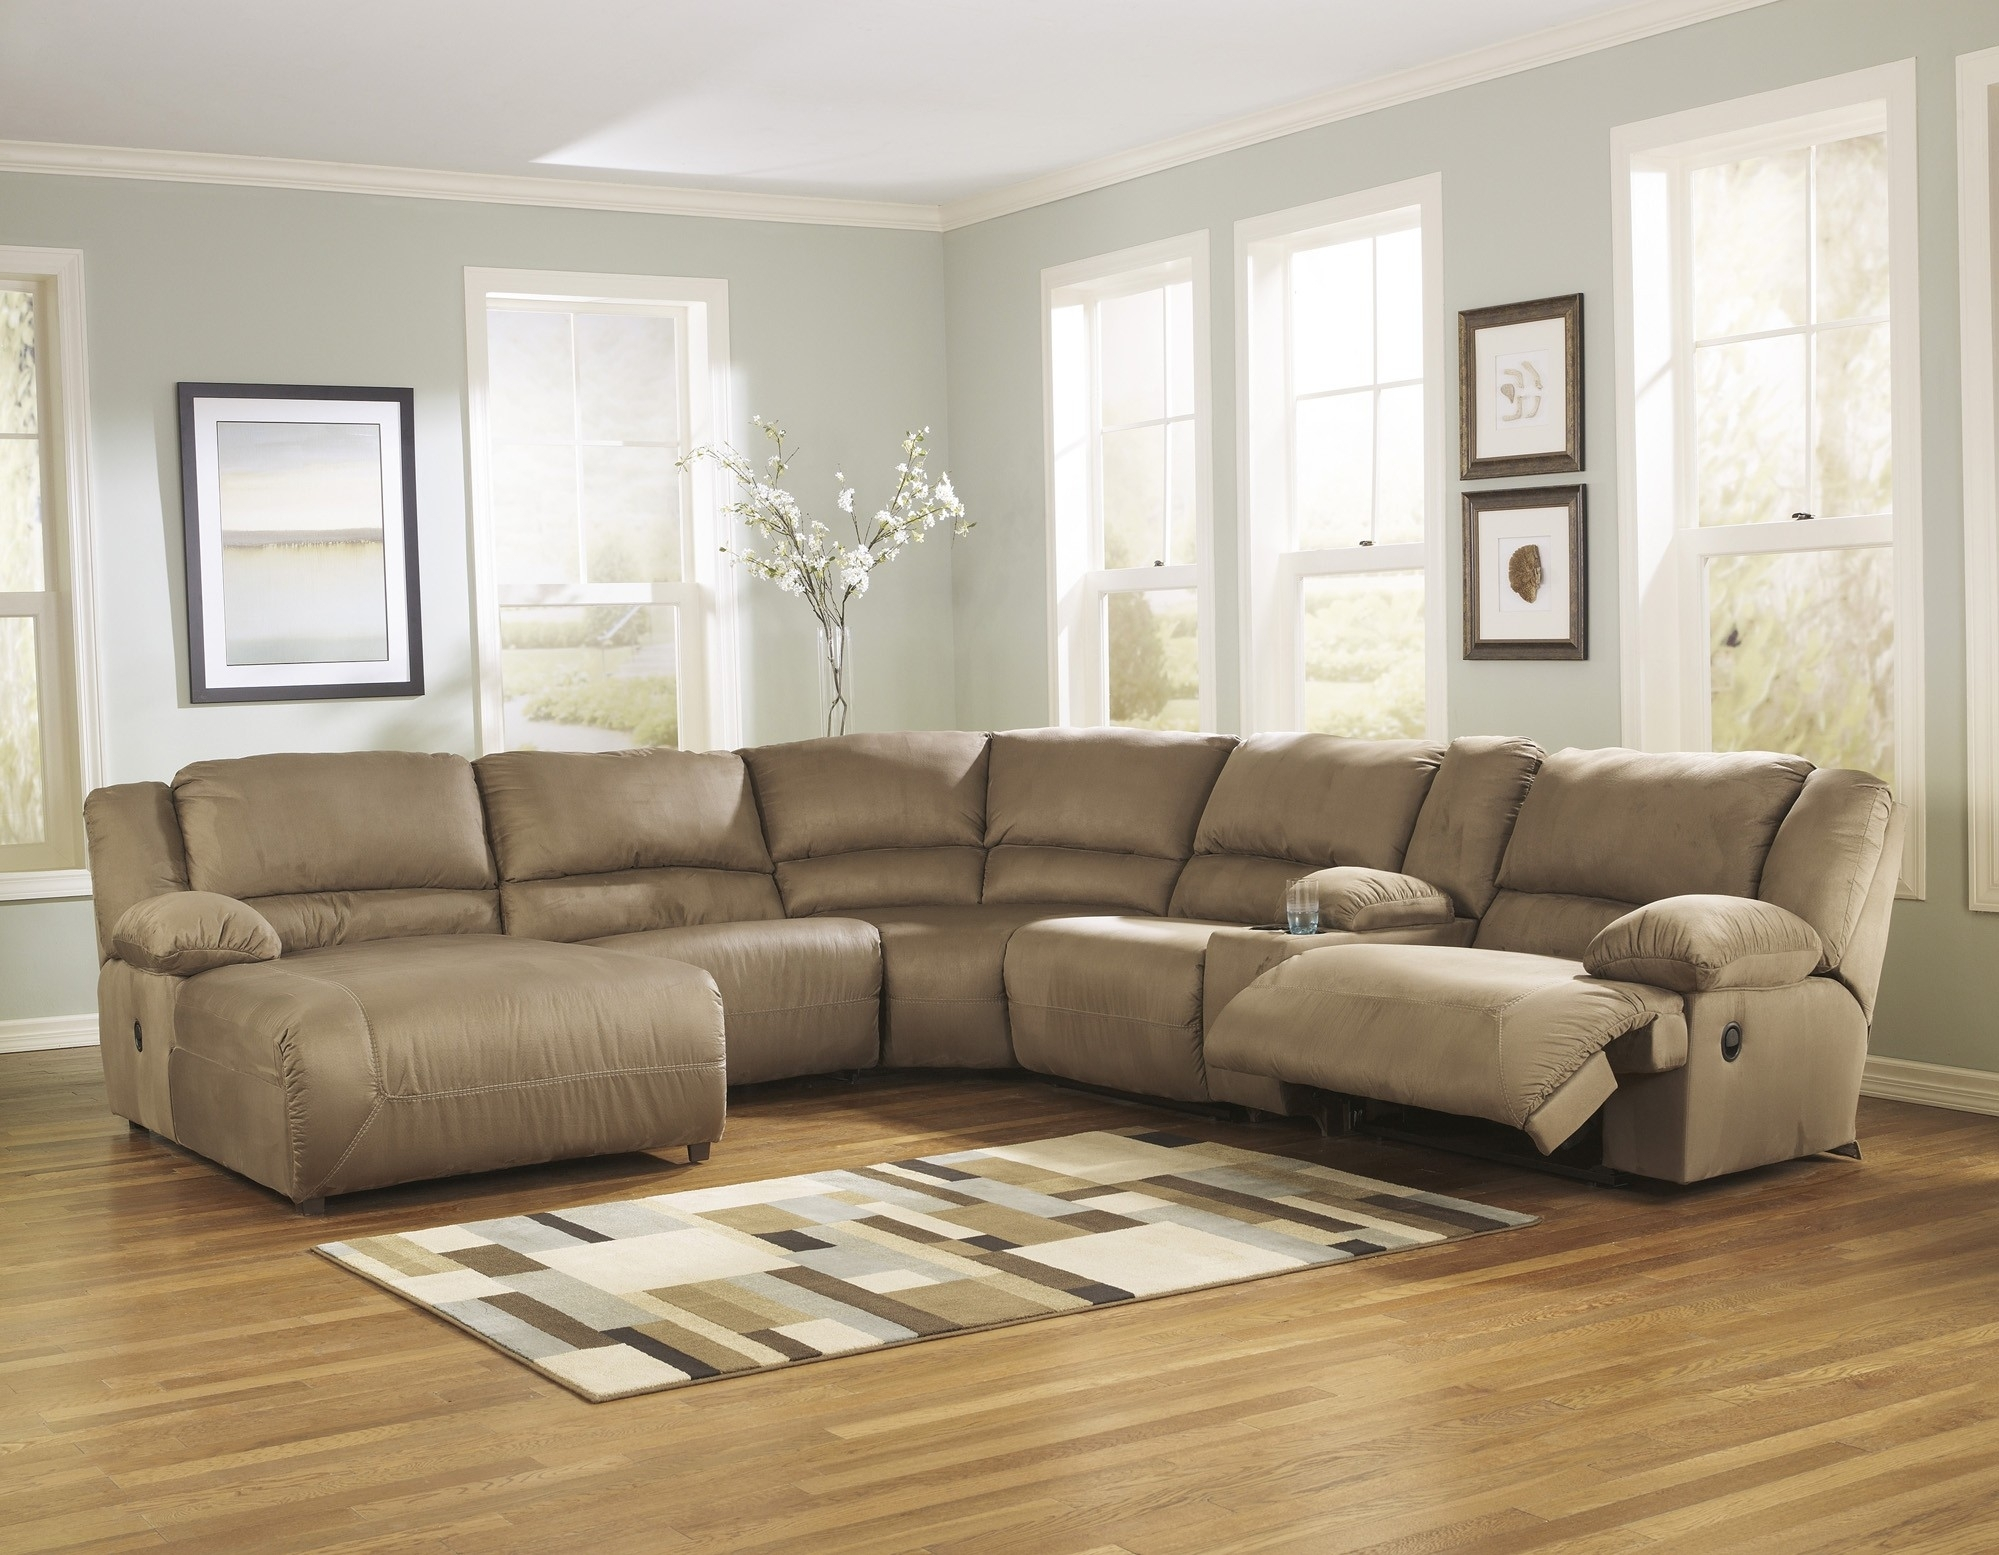 Hogan Mocha 6 Piece Sectional Sofa For $1, (Image 6 of 10)